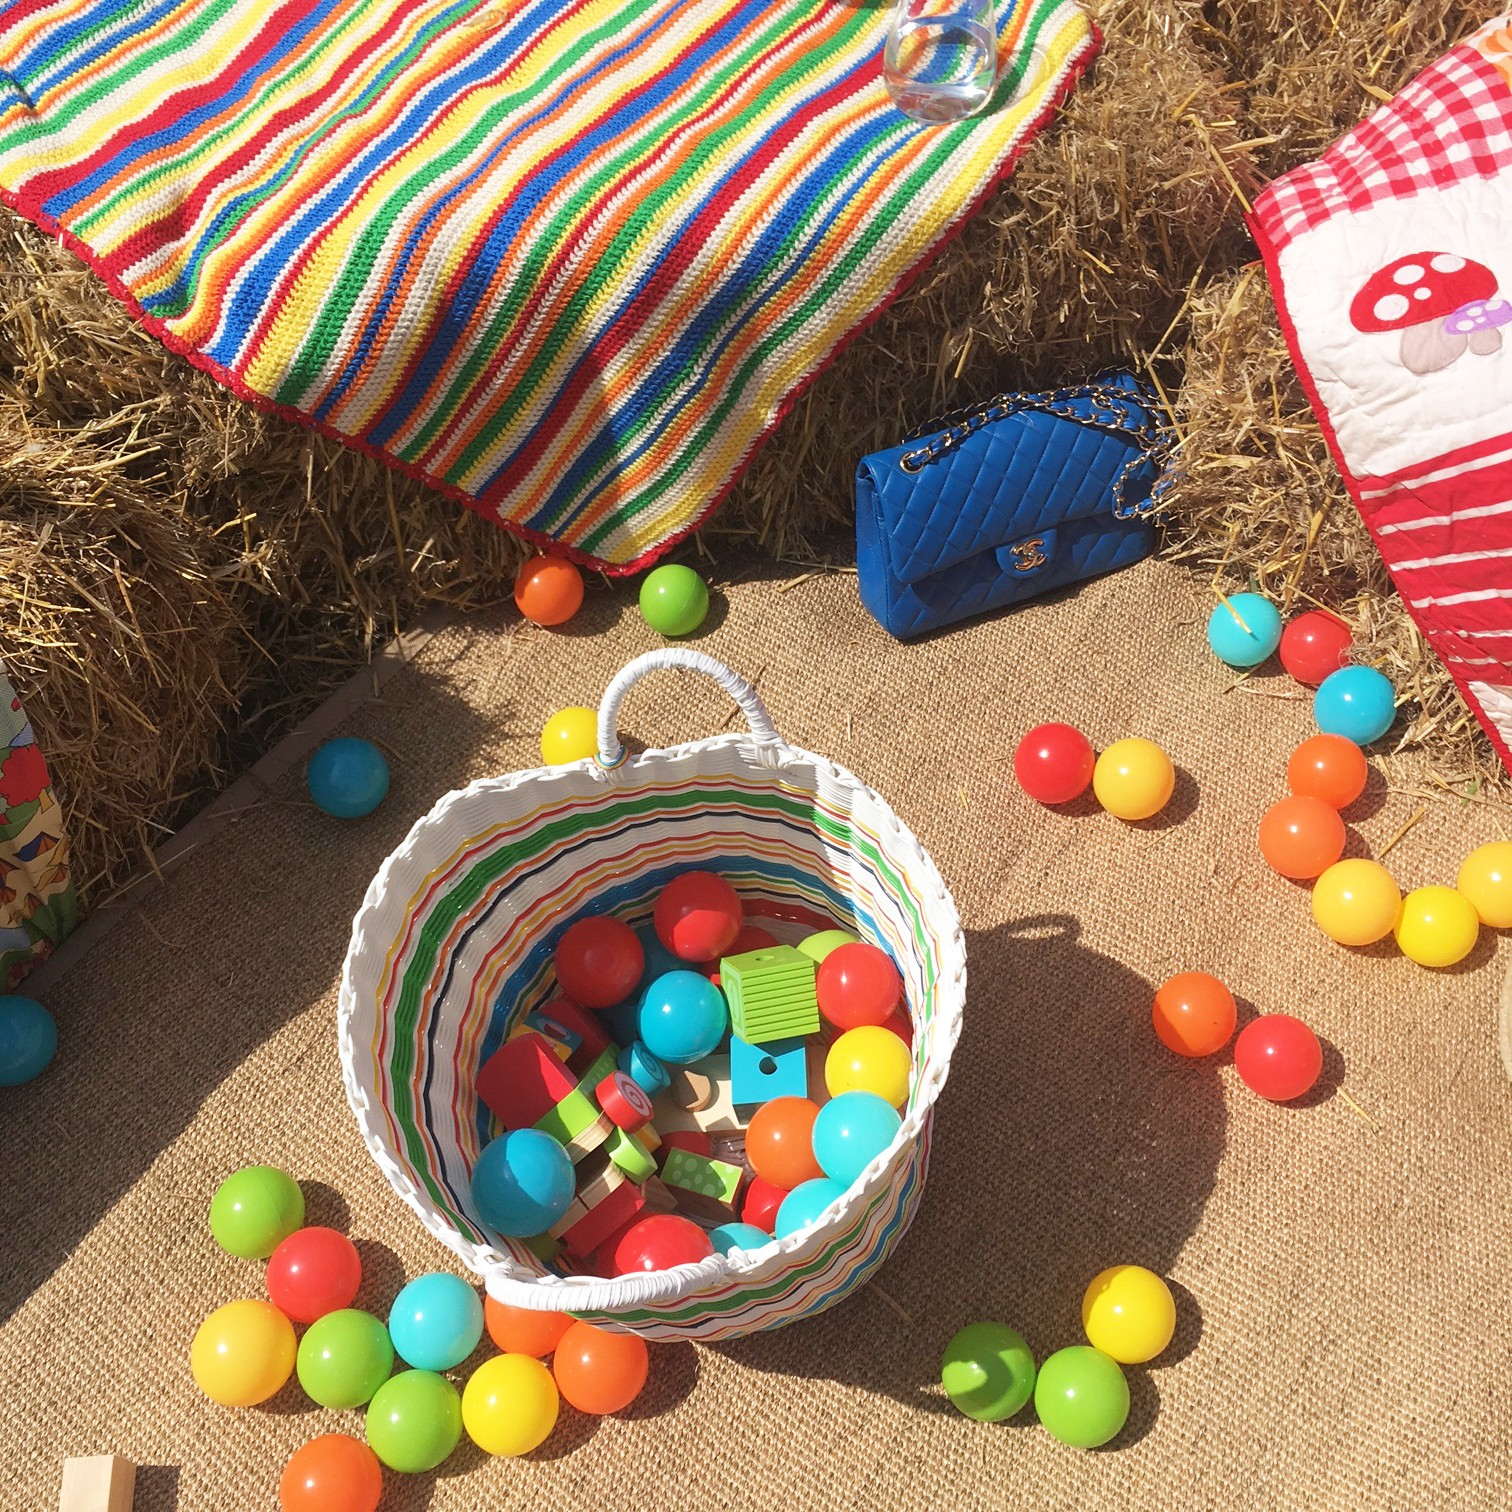 As always Little Bird made sure the little guests were looked after with a mini ball pit, a bubble machine and giant dominoes